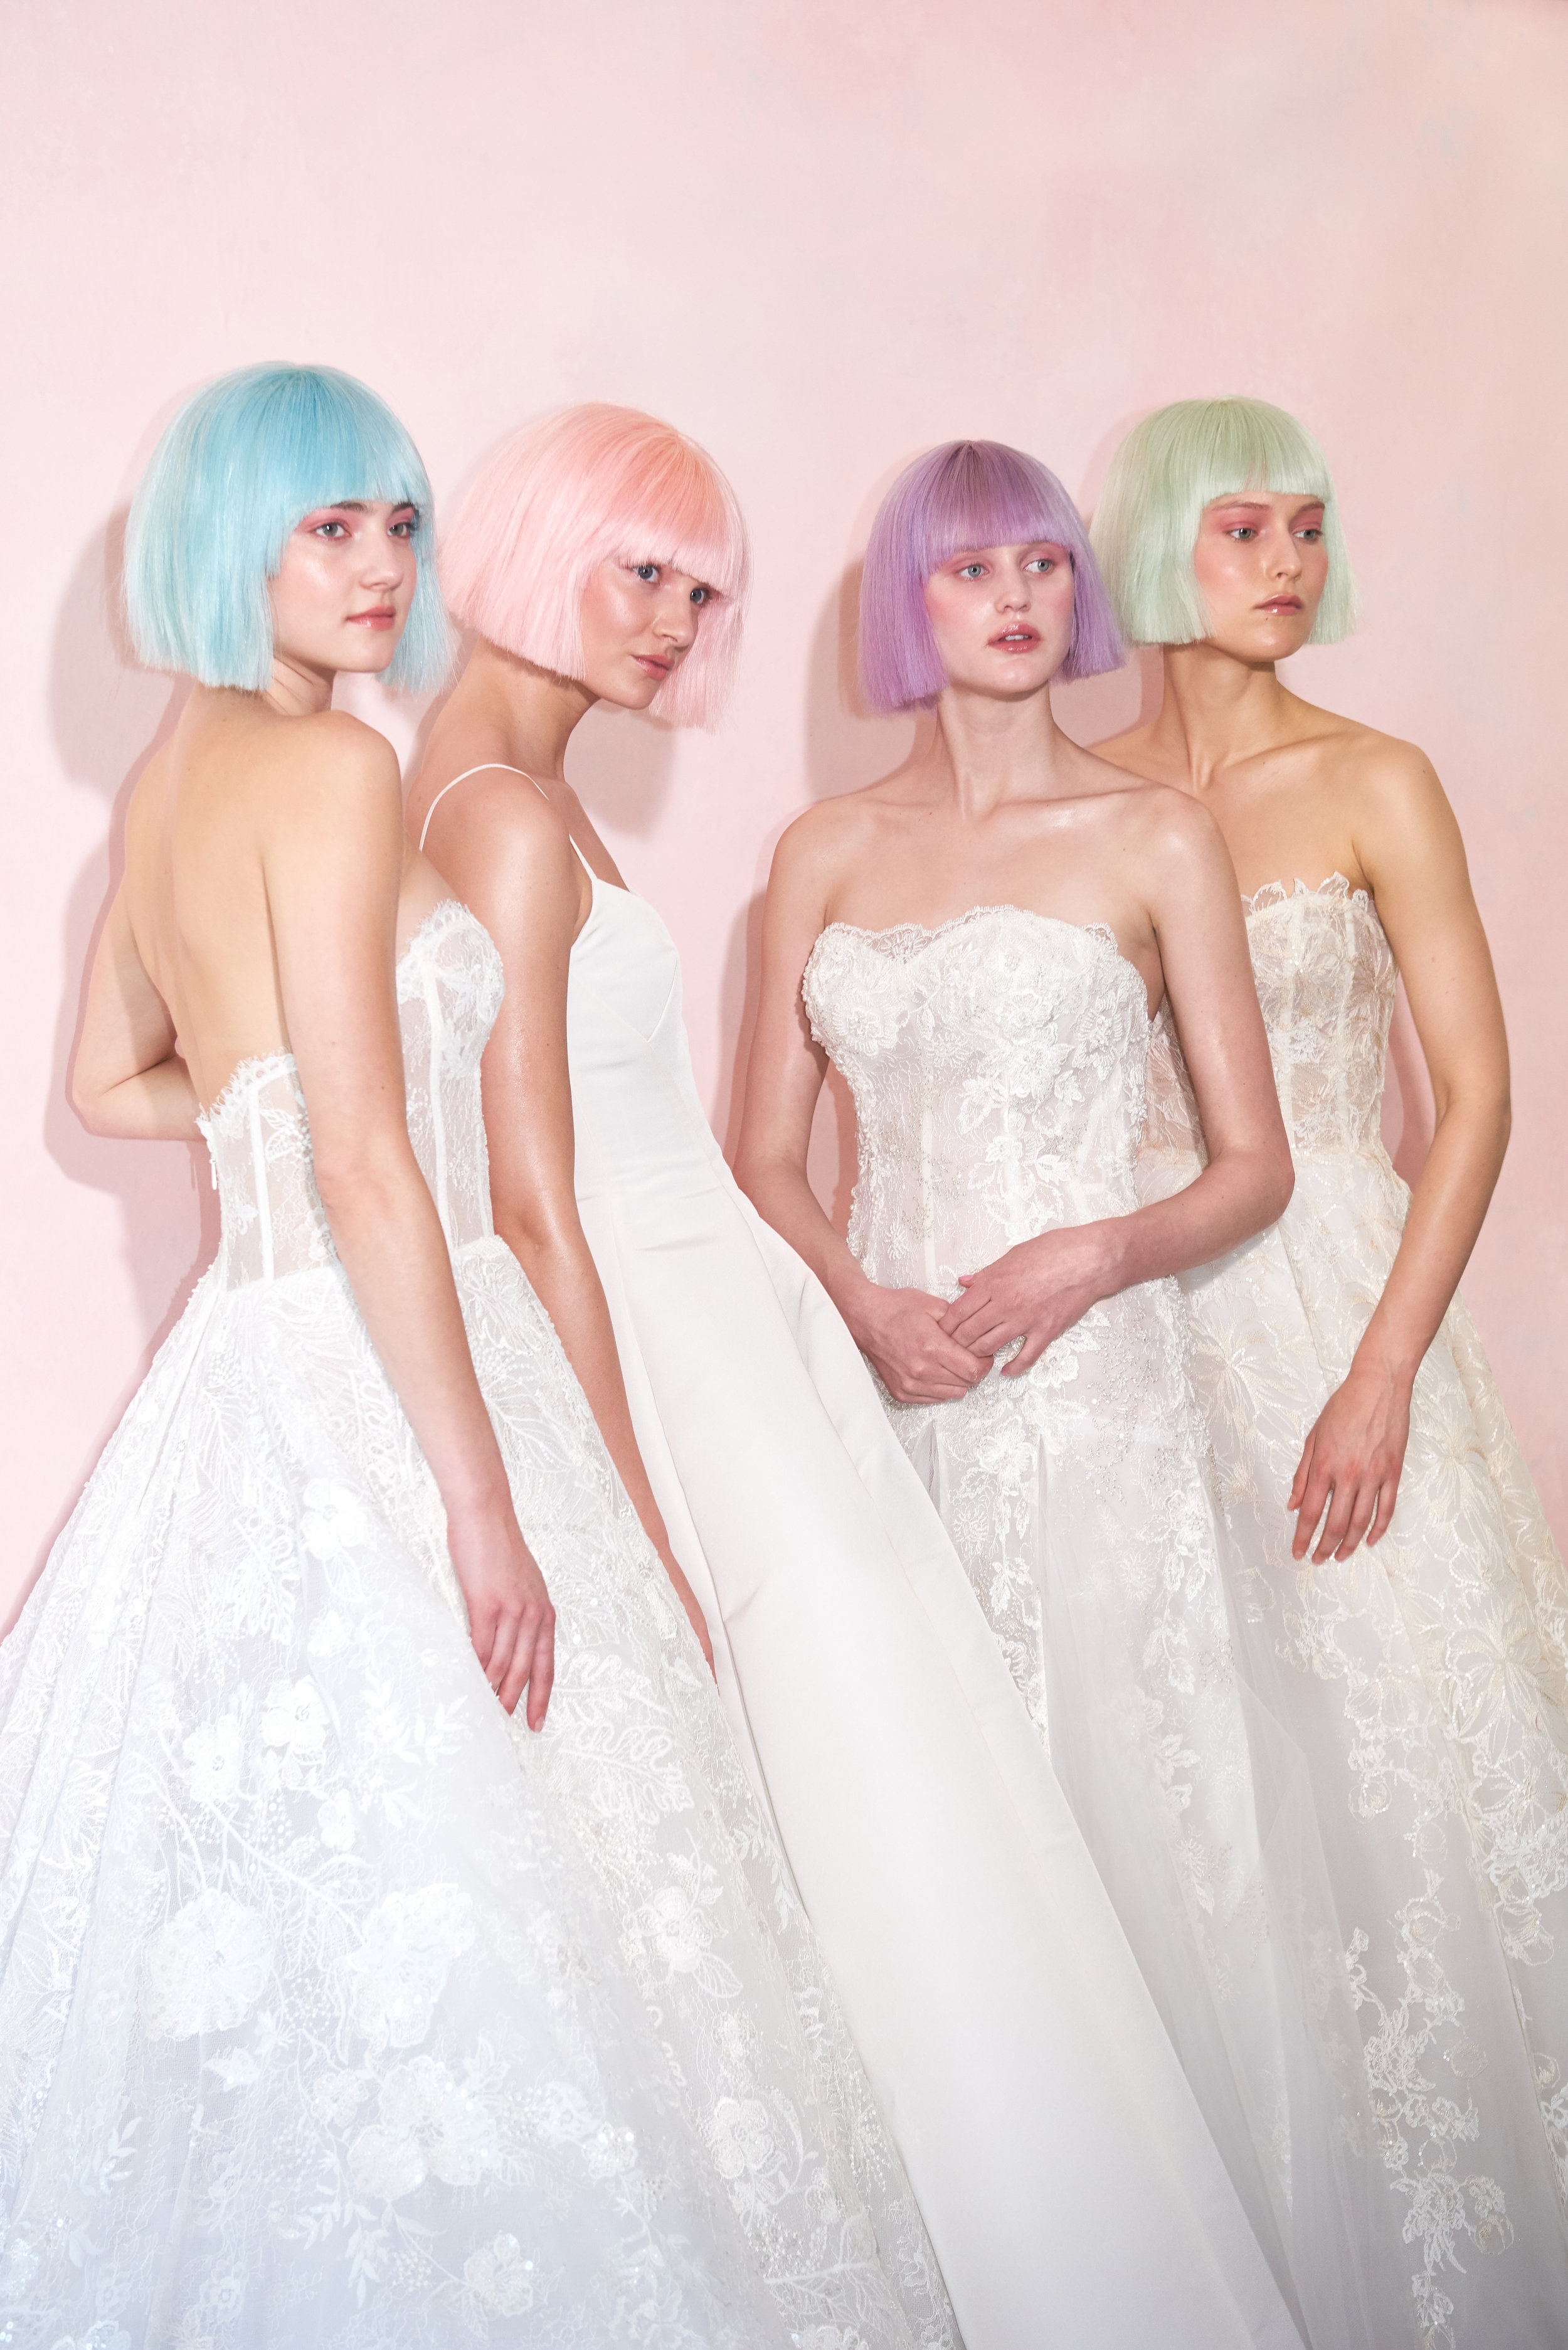 Isabelle Armstrong Spring 2019 Preview